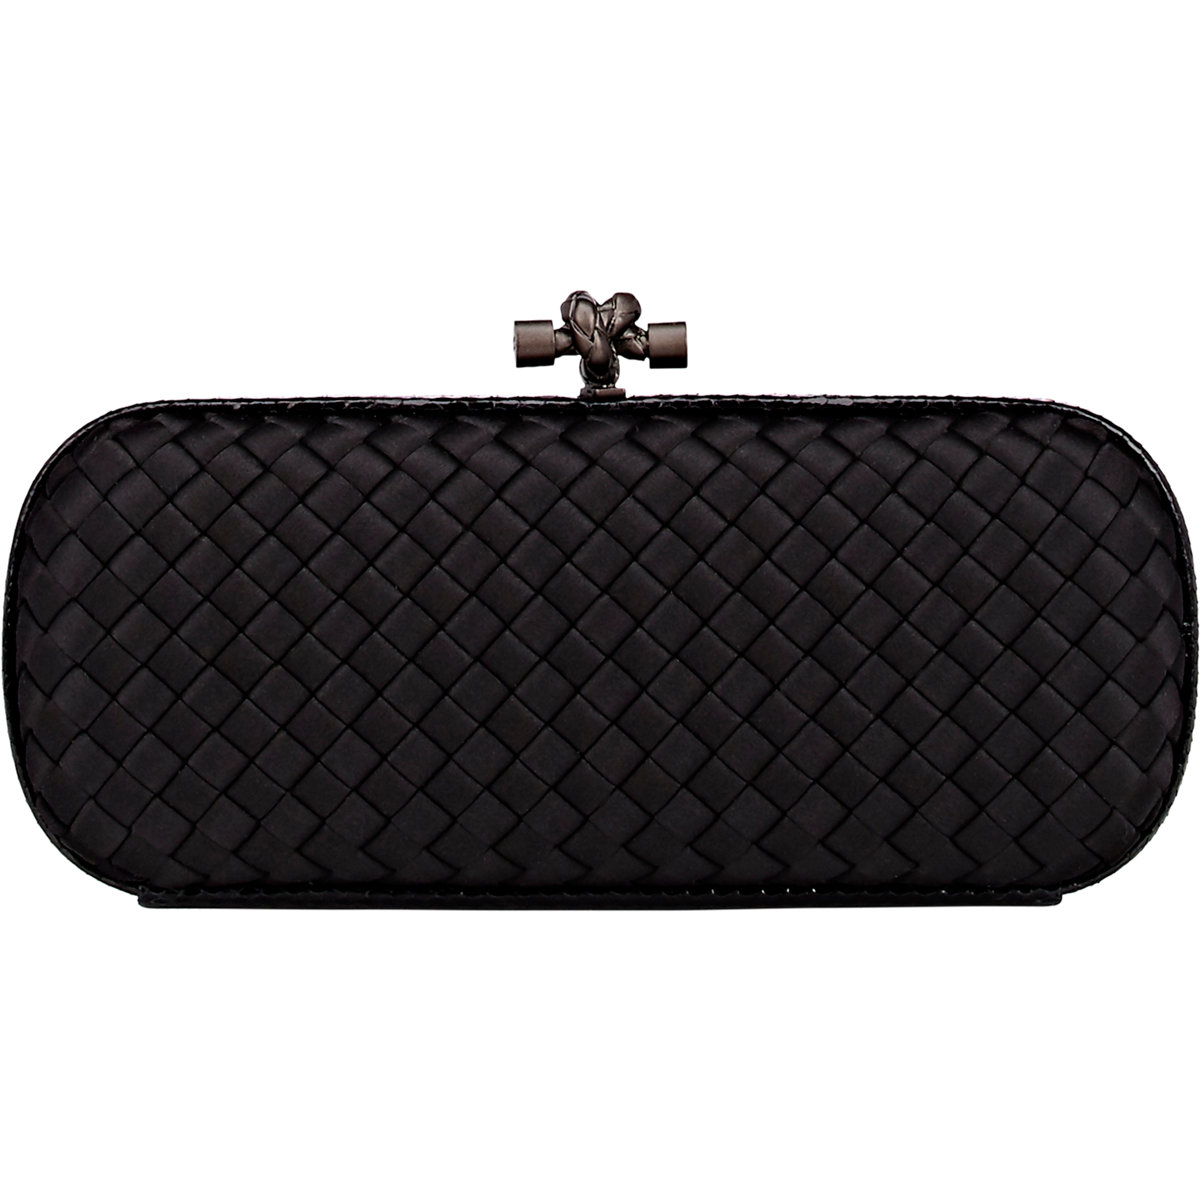 1ef5efb0eb6 Bottega Veneta Intreccio Impero Long Clutch in Black - Lyst